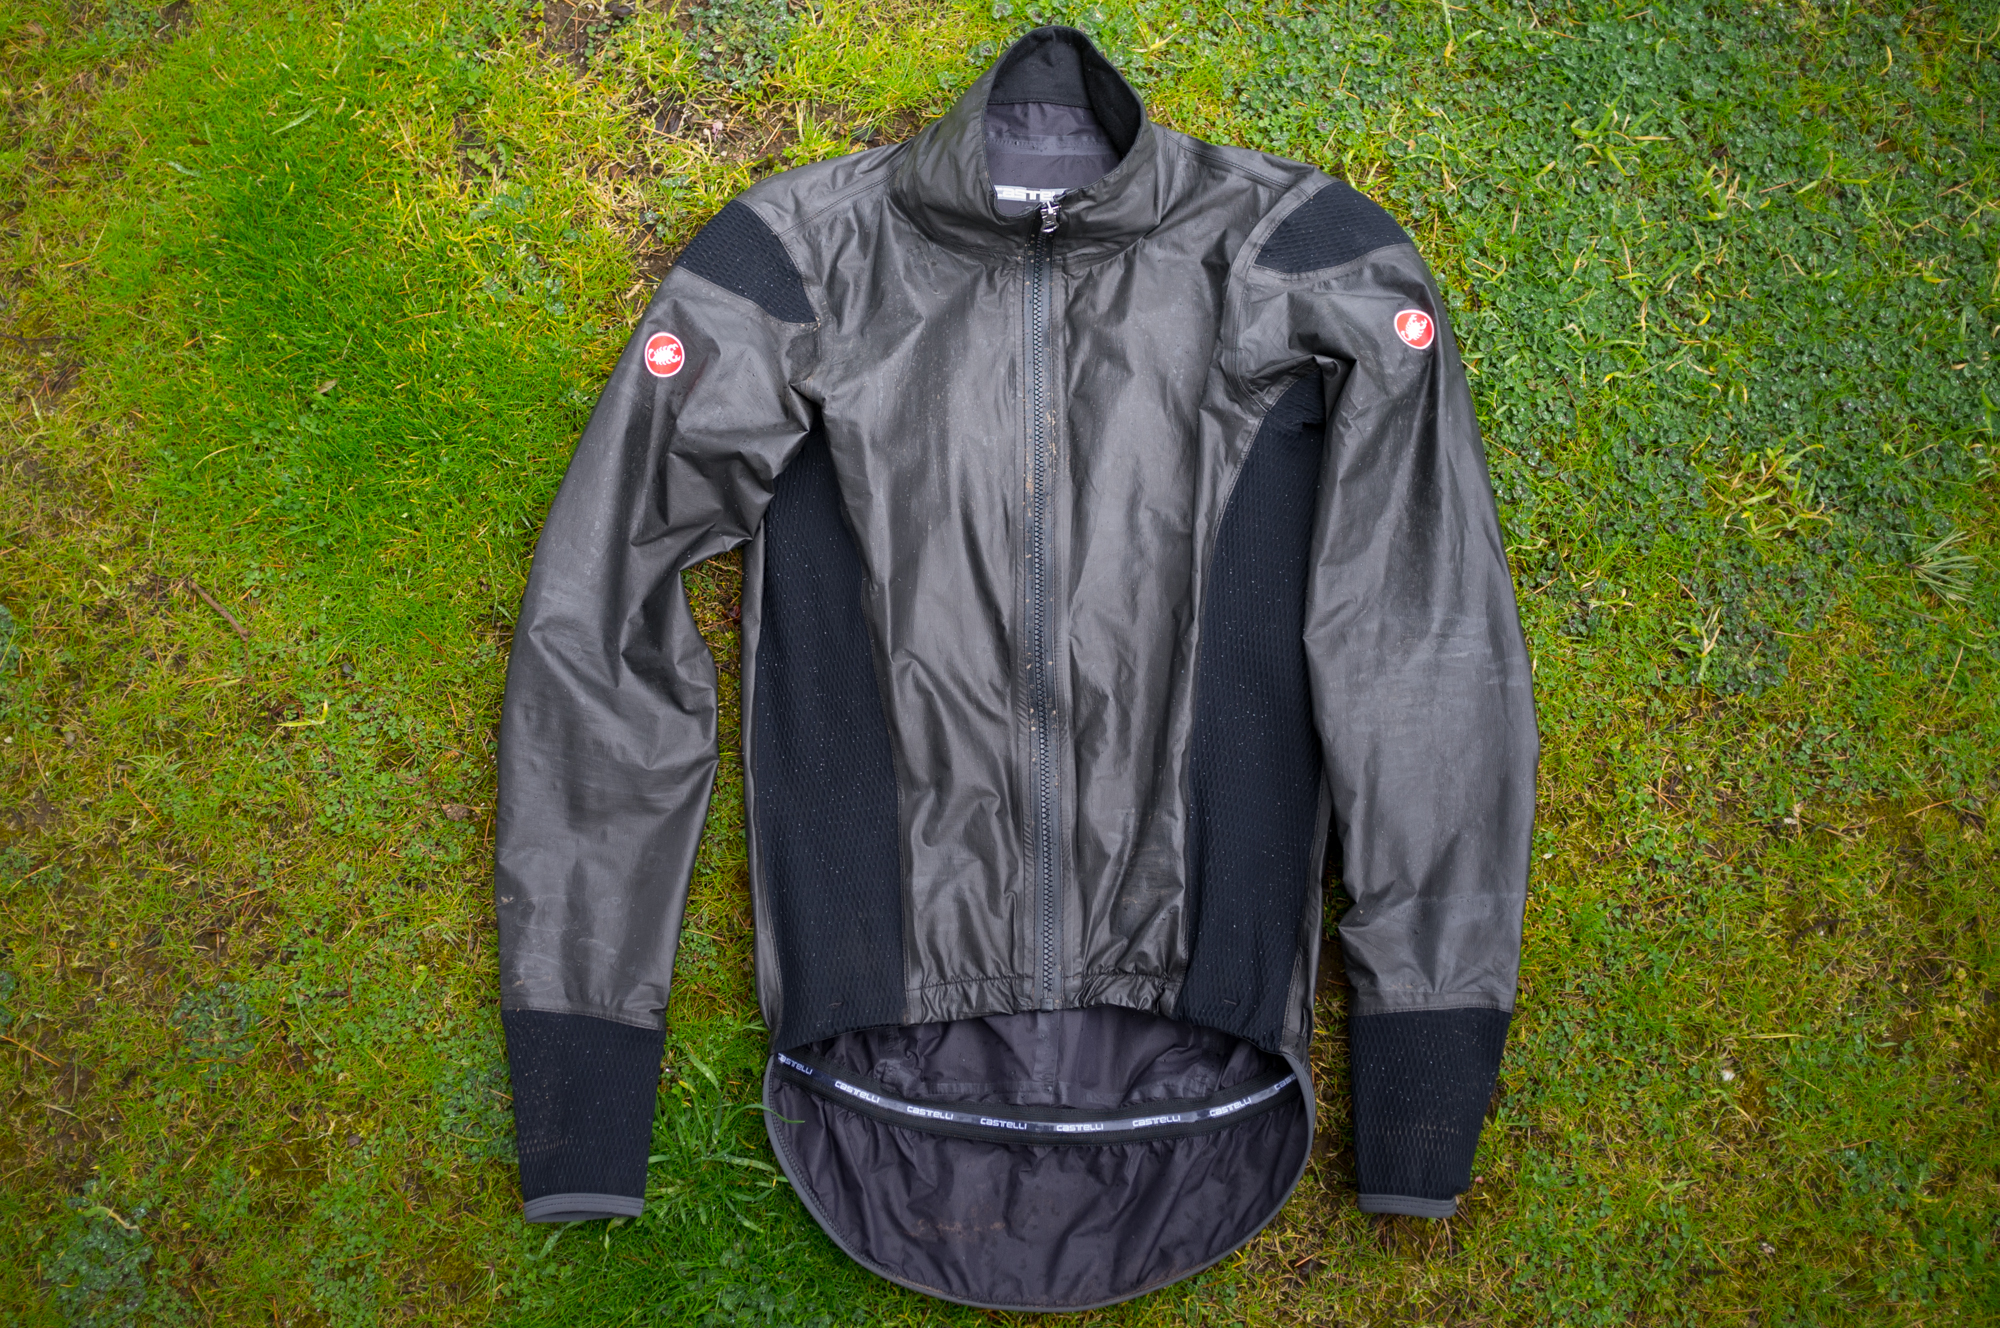 Castelli Idro Pro 2 Cycling Jacket Review